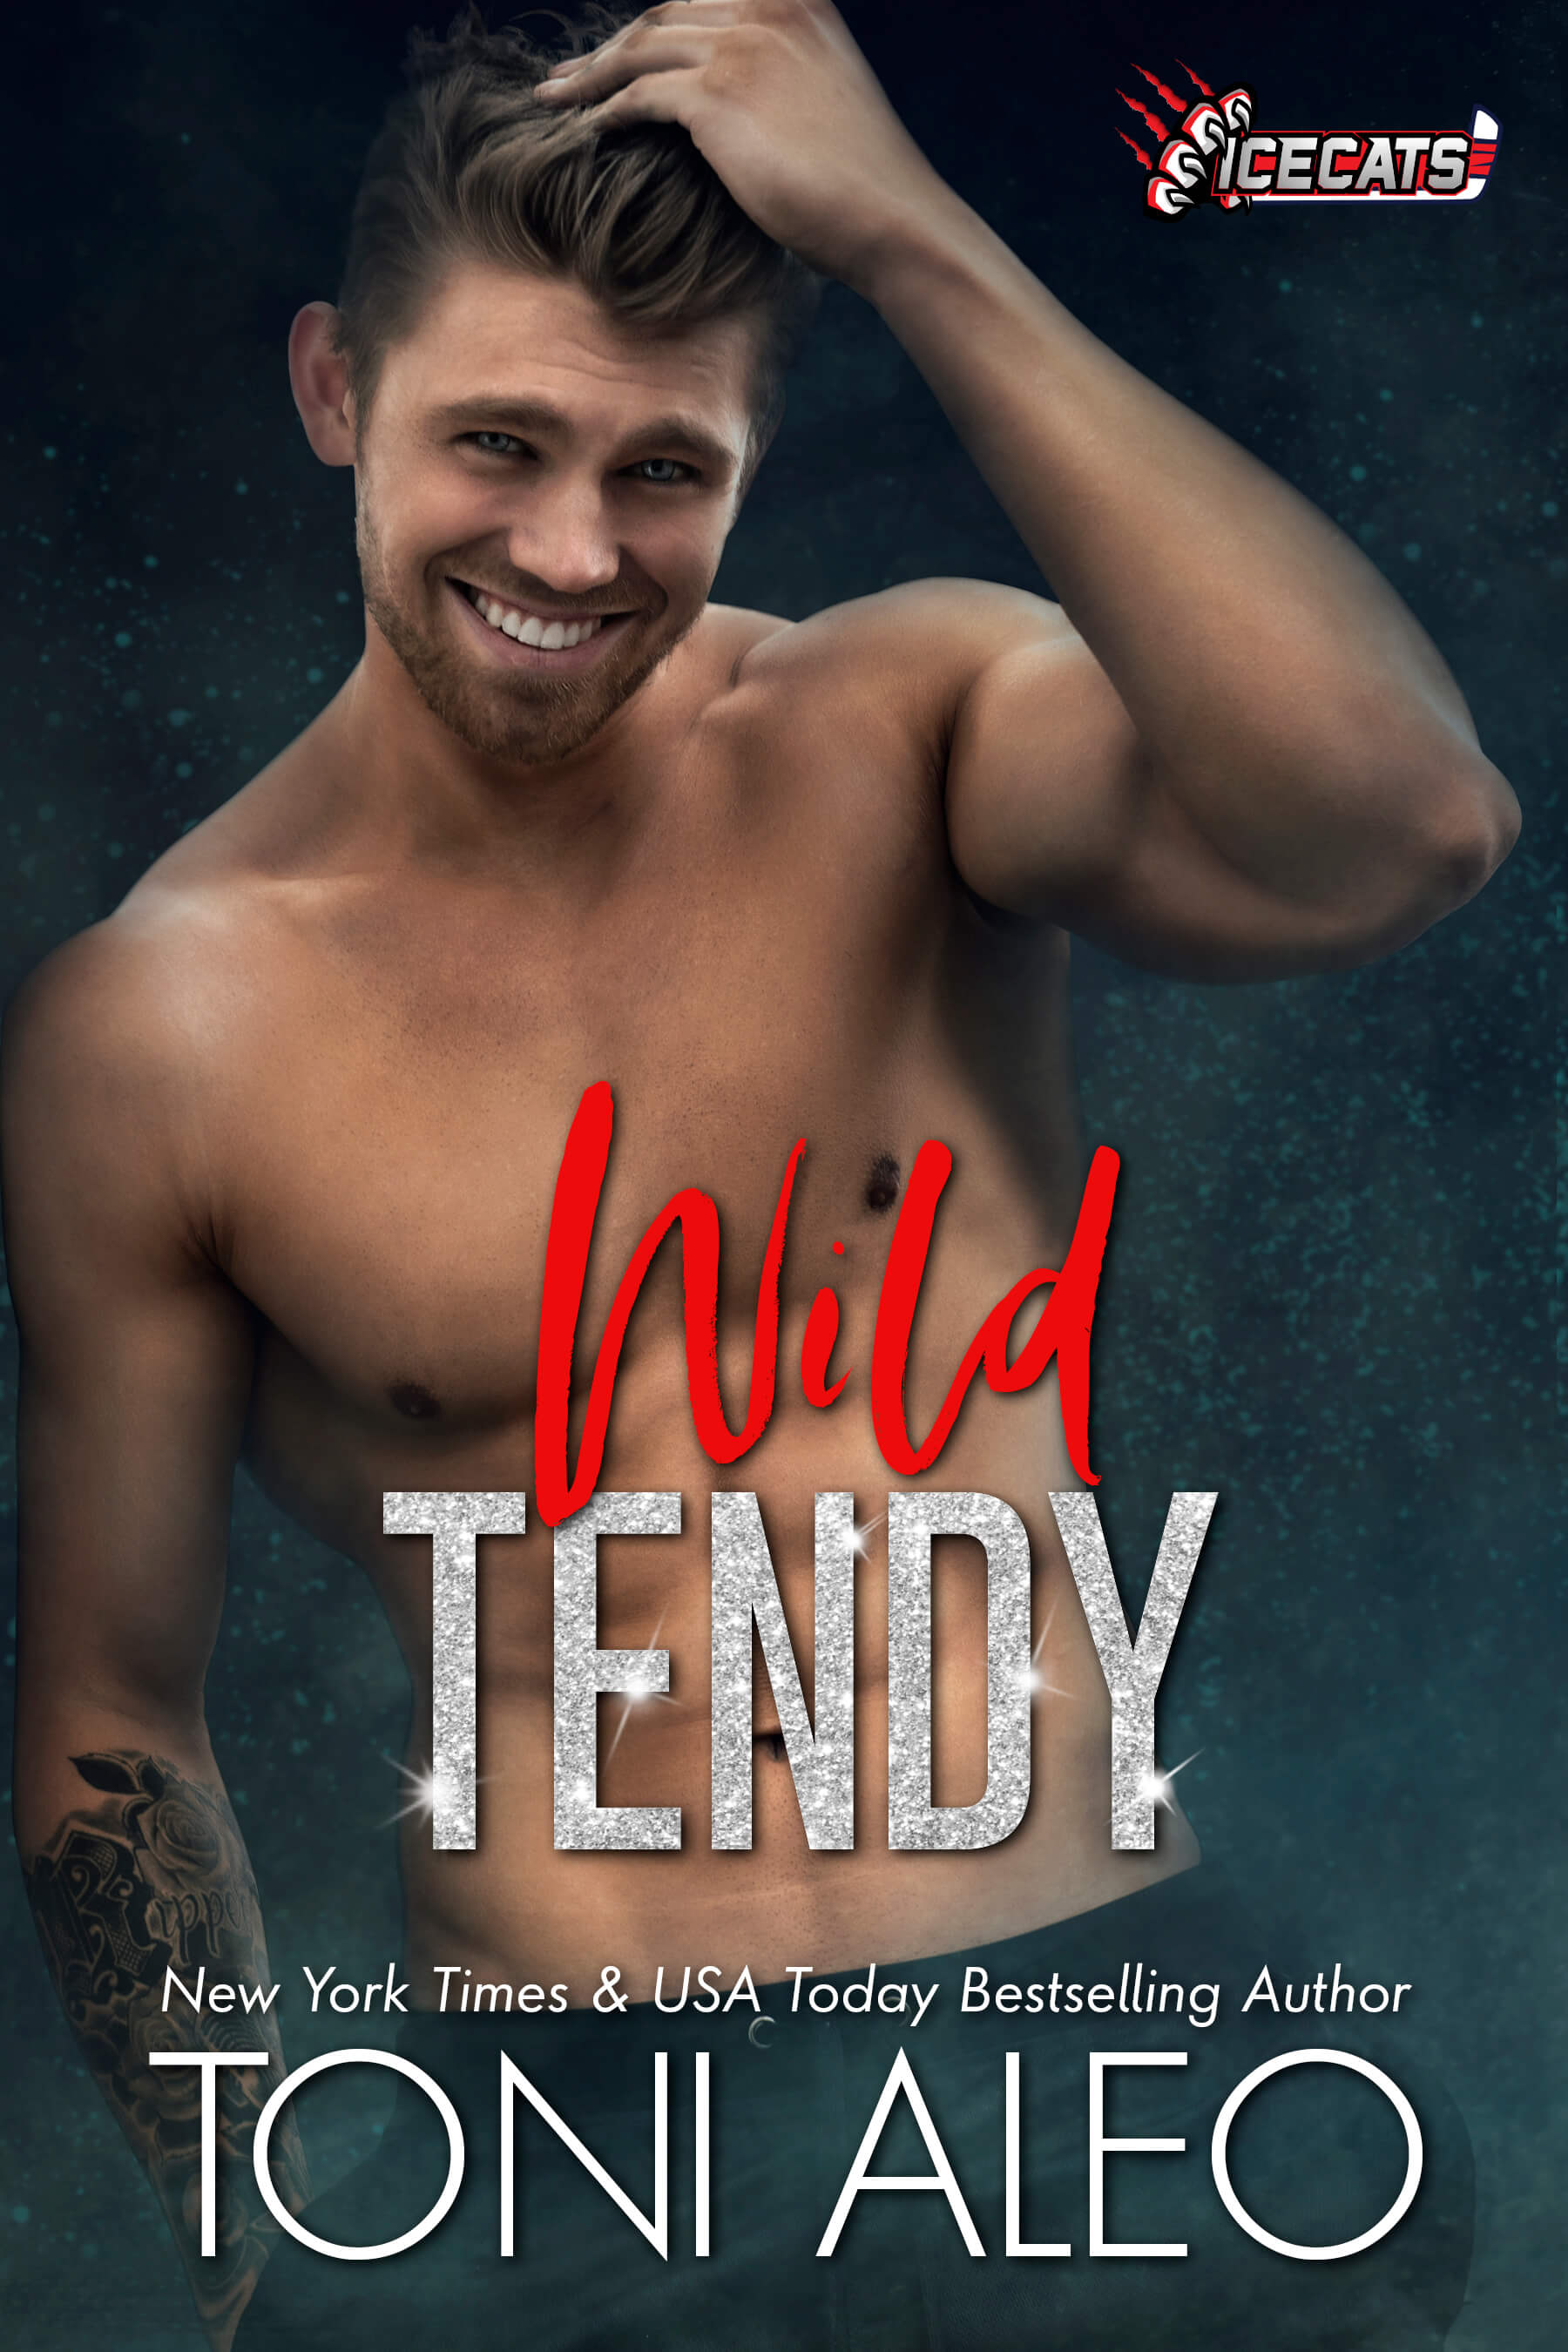 Wild Tendy by Toni Aleo IceCats